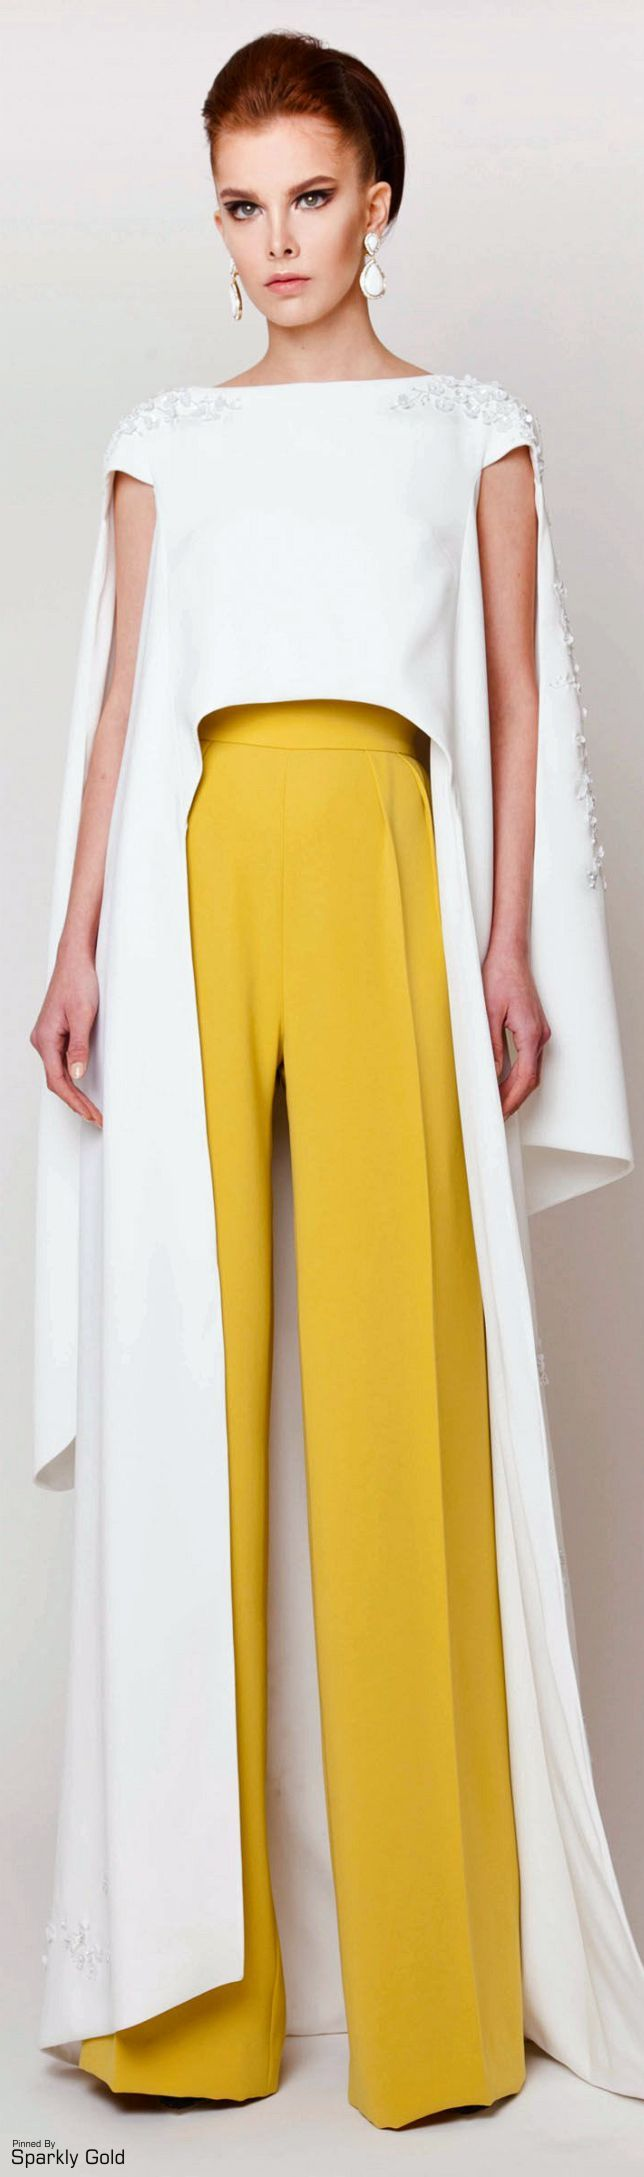 Azzi & Osta S/S 2015 | Style Inspiration Lookbook. Outfits. Fashion. Style…